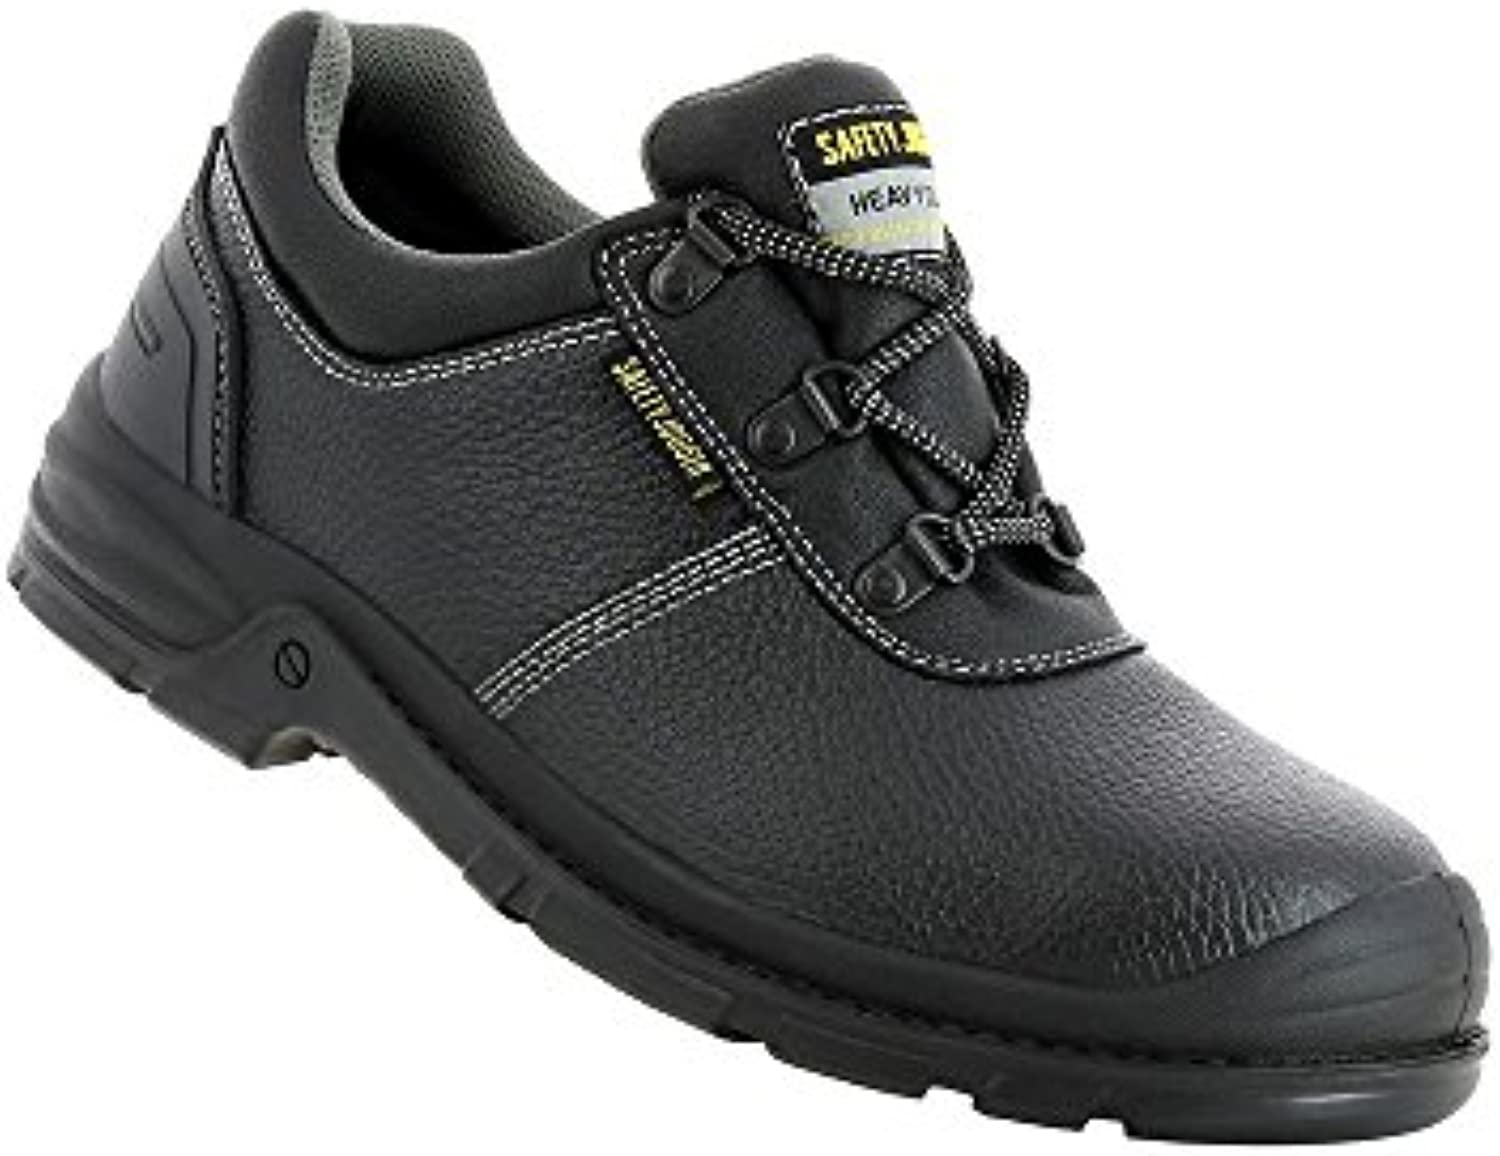 Safety Jogger Bestrun2S4001 Bestrun2 S3 SRC Safety Shoe With Steel Toecap And Steel Midsole